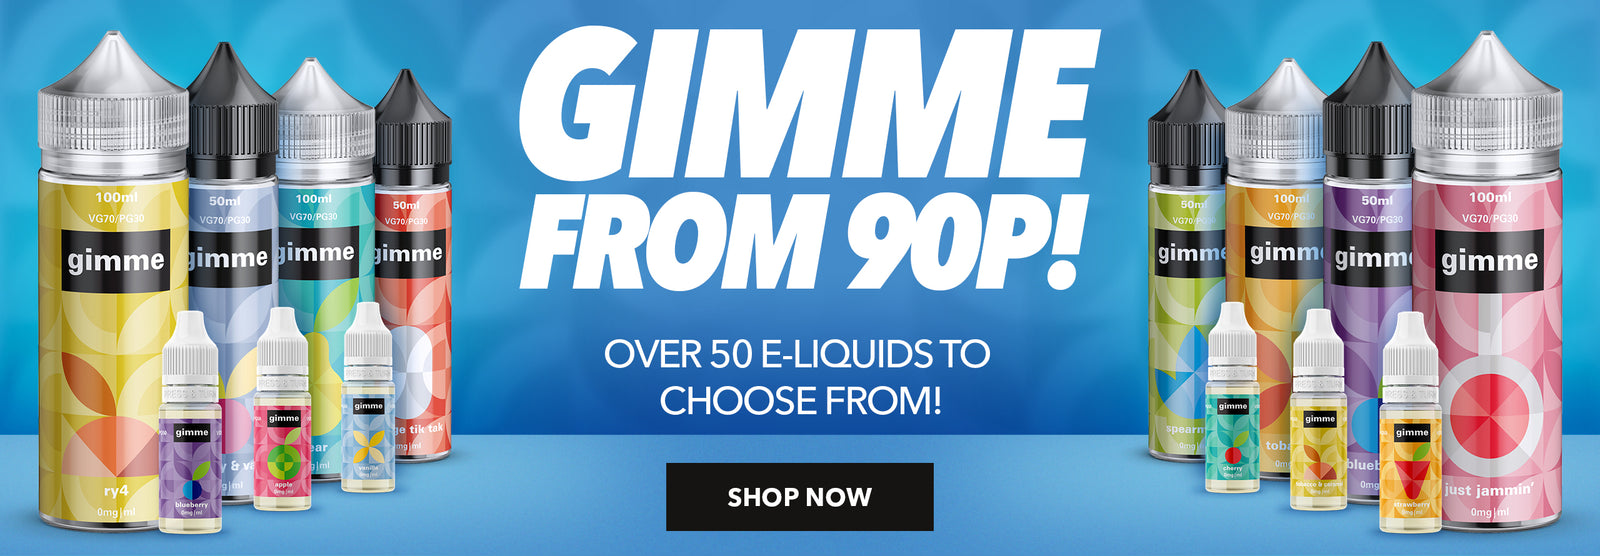 Gimme E-liquid for 90p